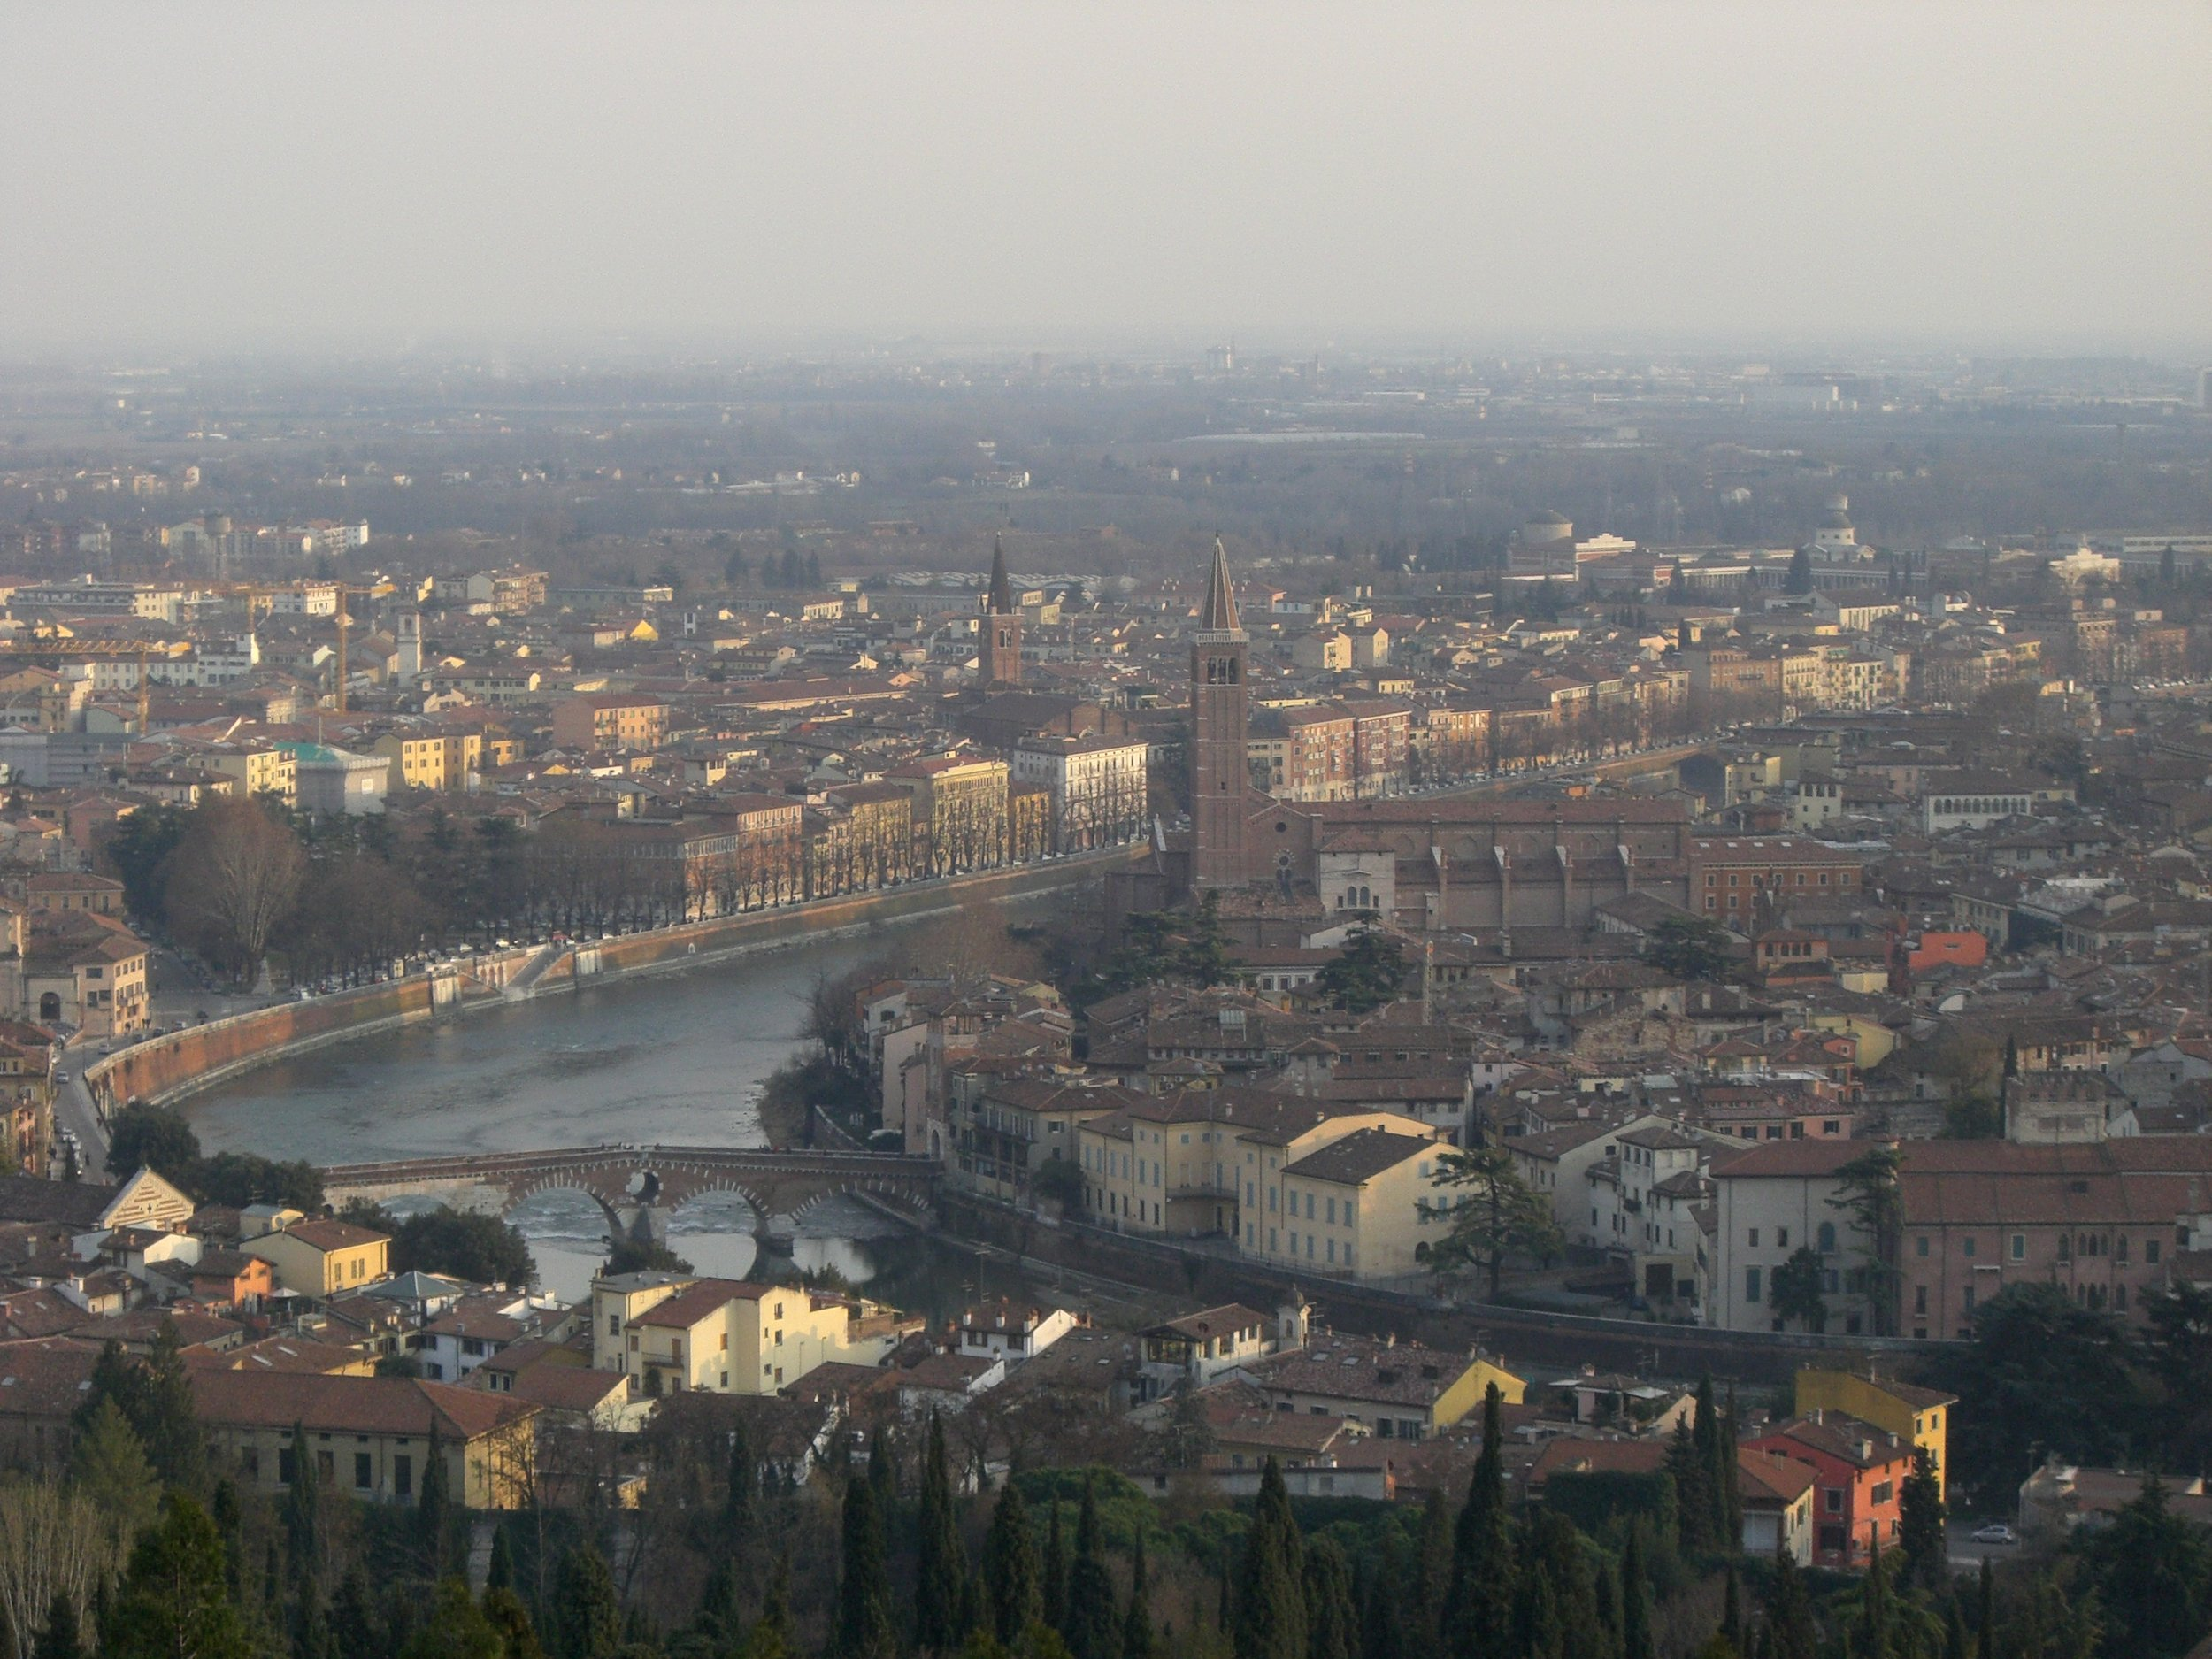 the view from Castel San Pietro